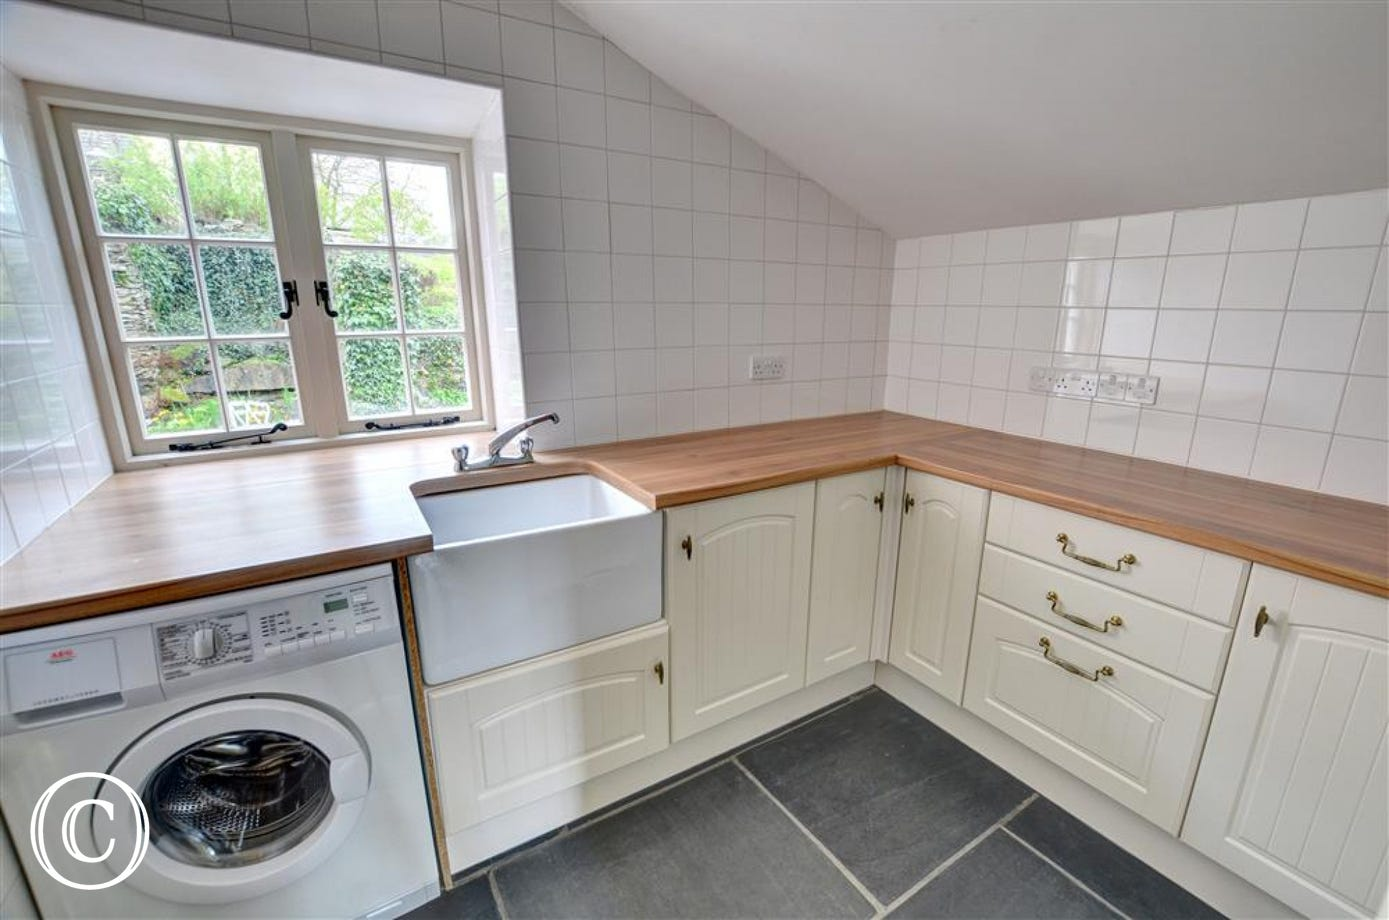 The utility room has cream fitted units